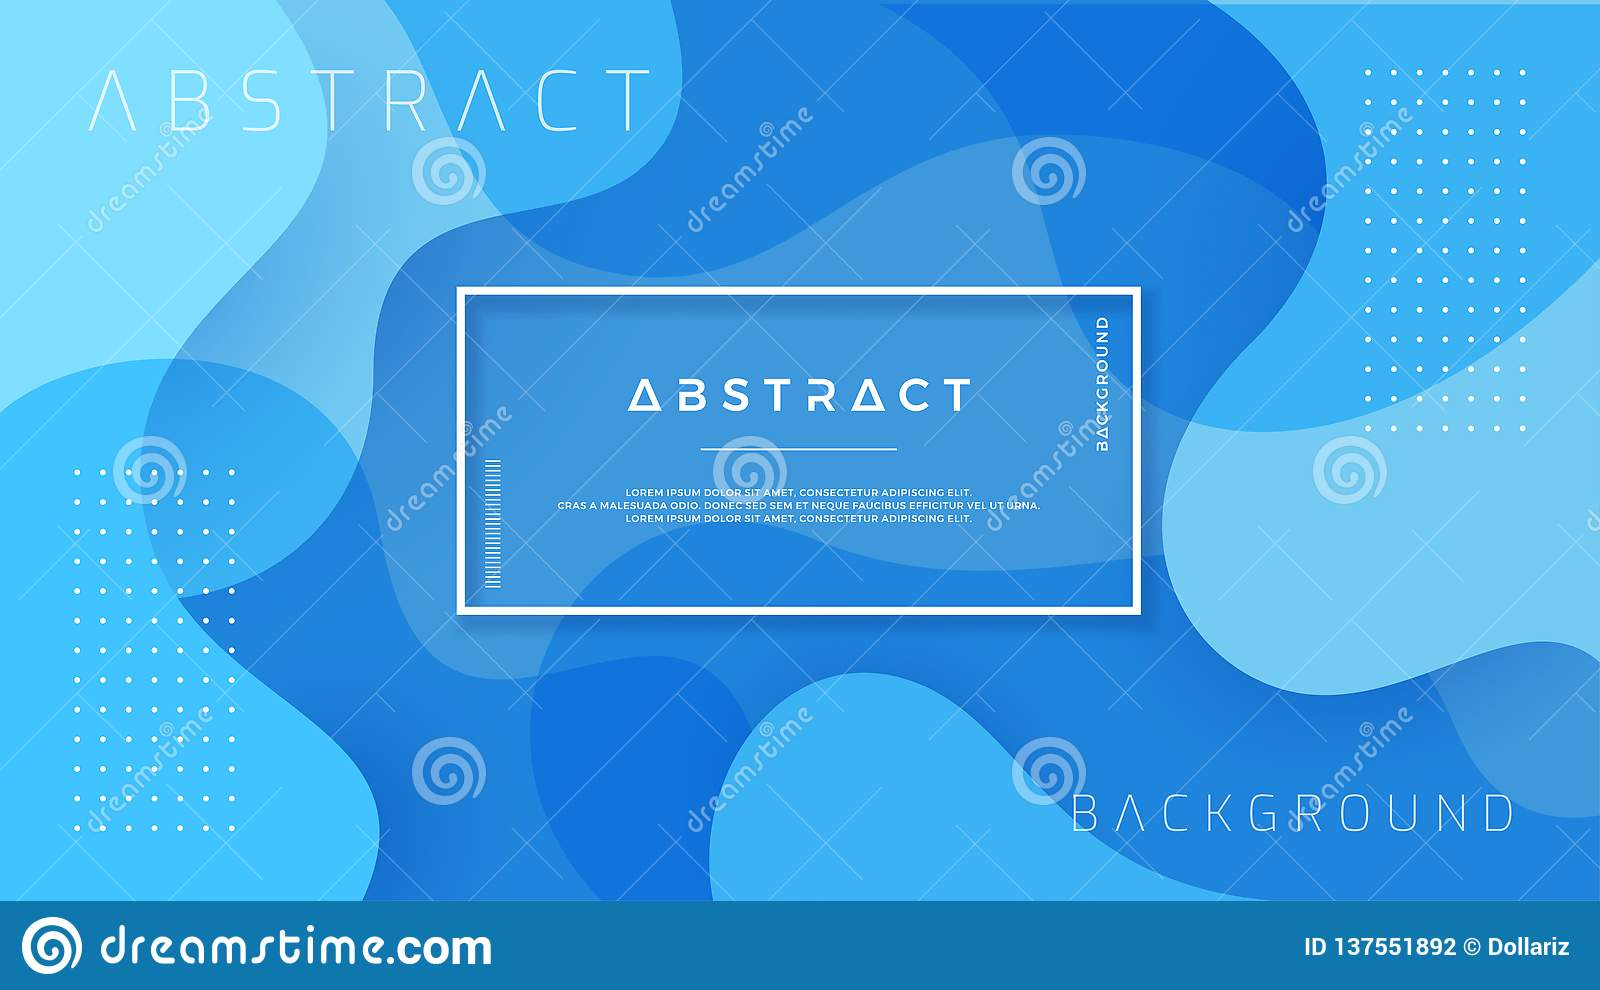 Dynamic textured background design in 3D style with blue color. EPS10 Vector background